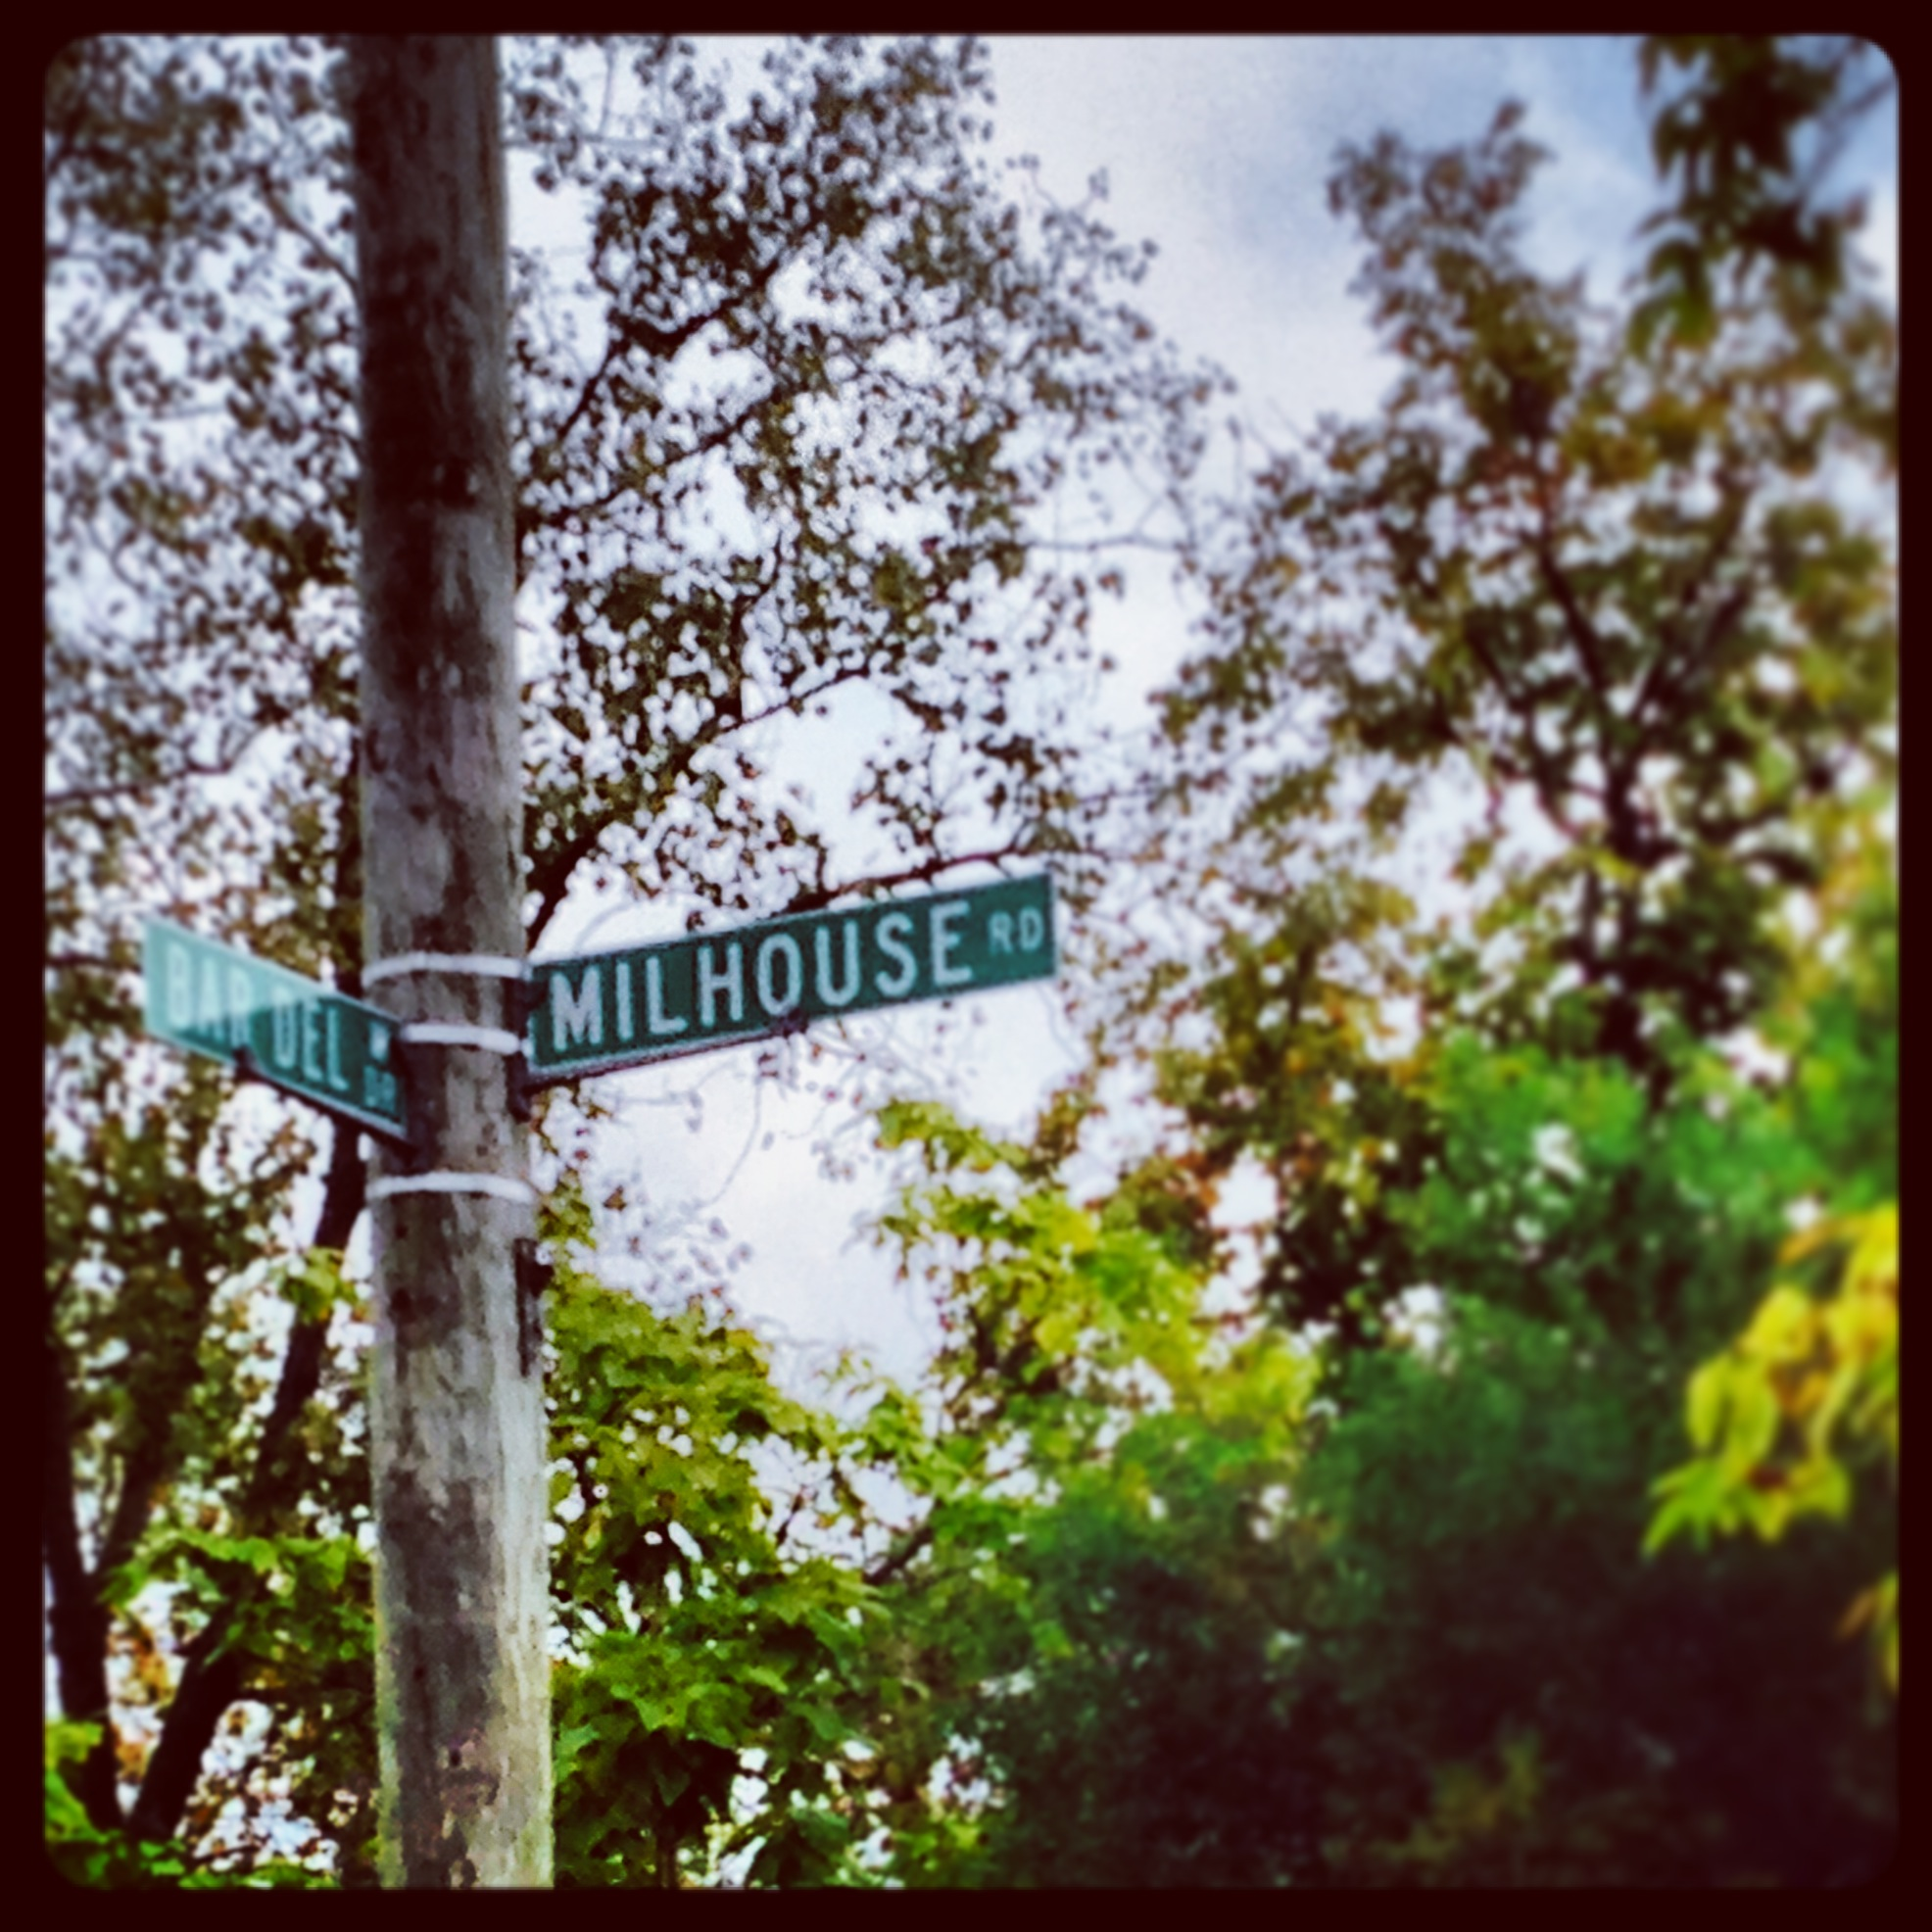 What's in a Name: Milhouse Road